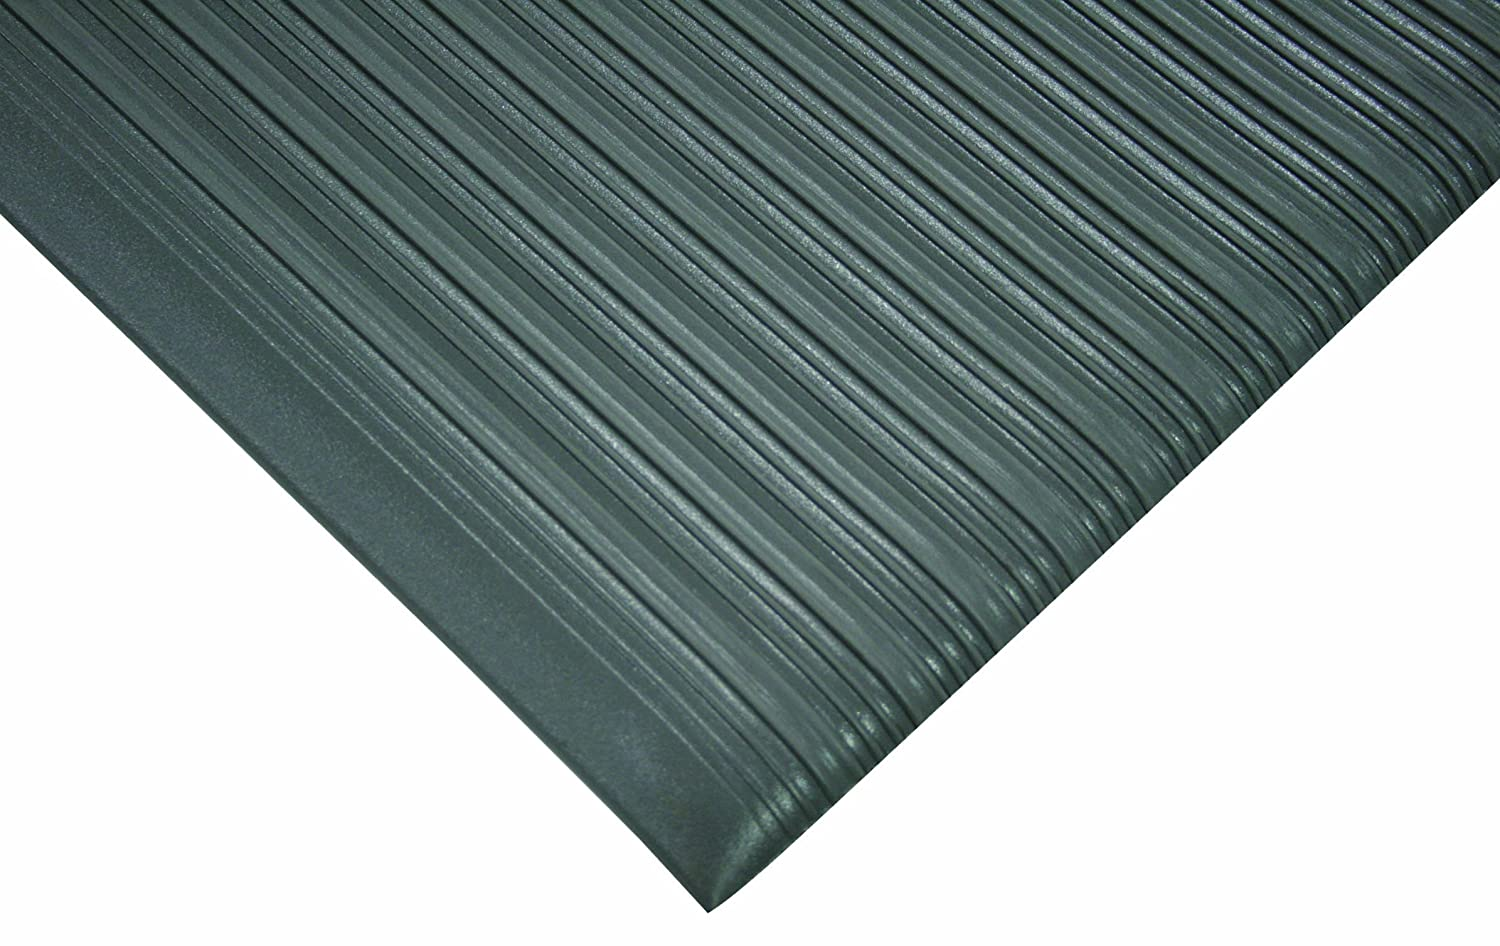 for Dry and Damp Areas 2 Width x 14 Length x 0.62 Thickness Ergomat Polyurethane Anti-Fatigue and Anti-Static Mat Gray